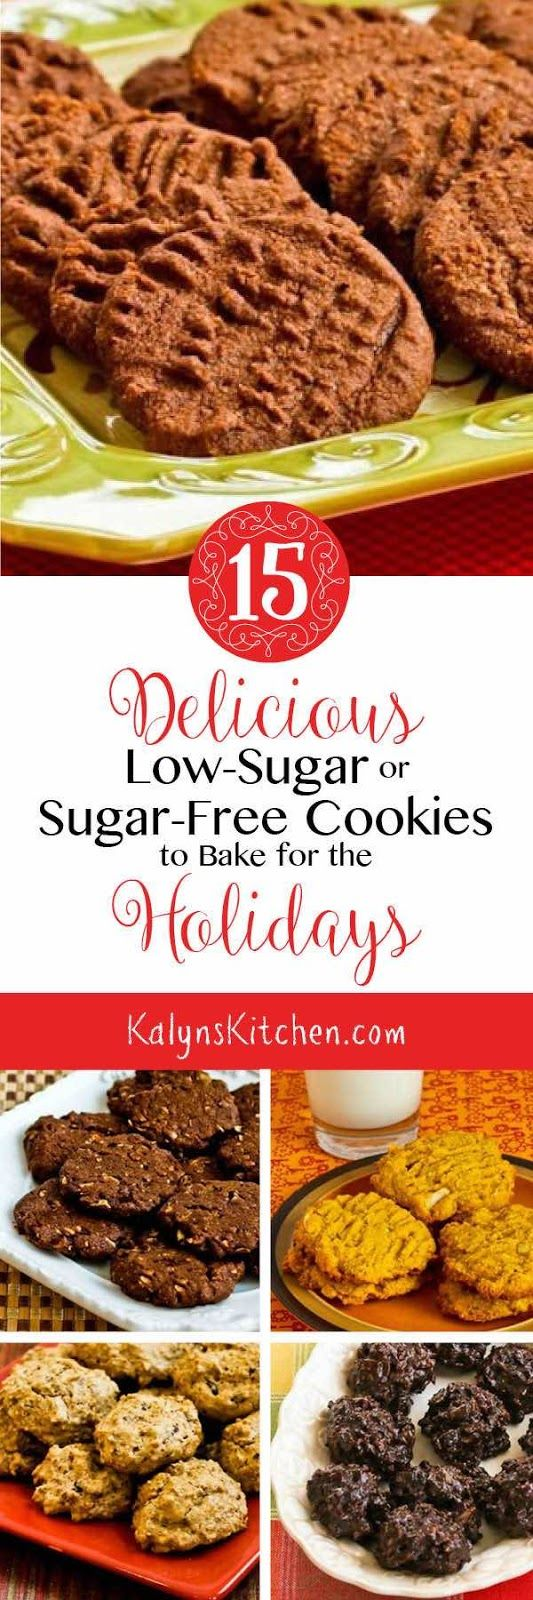 15 Delicious Low-Sugar or Sugar-Free Cookies to Bake for the Holidays; make the cookies with the sweetener of your choice (for sugar-free) or use a small amount of brown sugar (for low-sugar); your choice! All these cookies are delicious.  [found on KalynsKitchen.com]